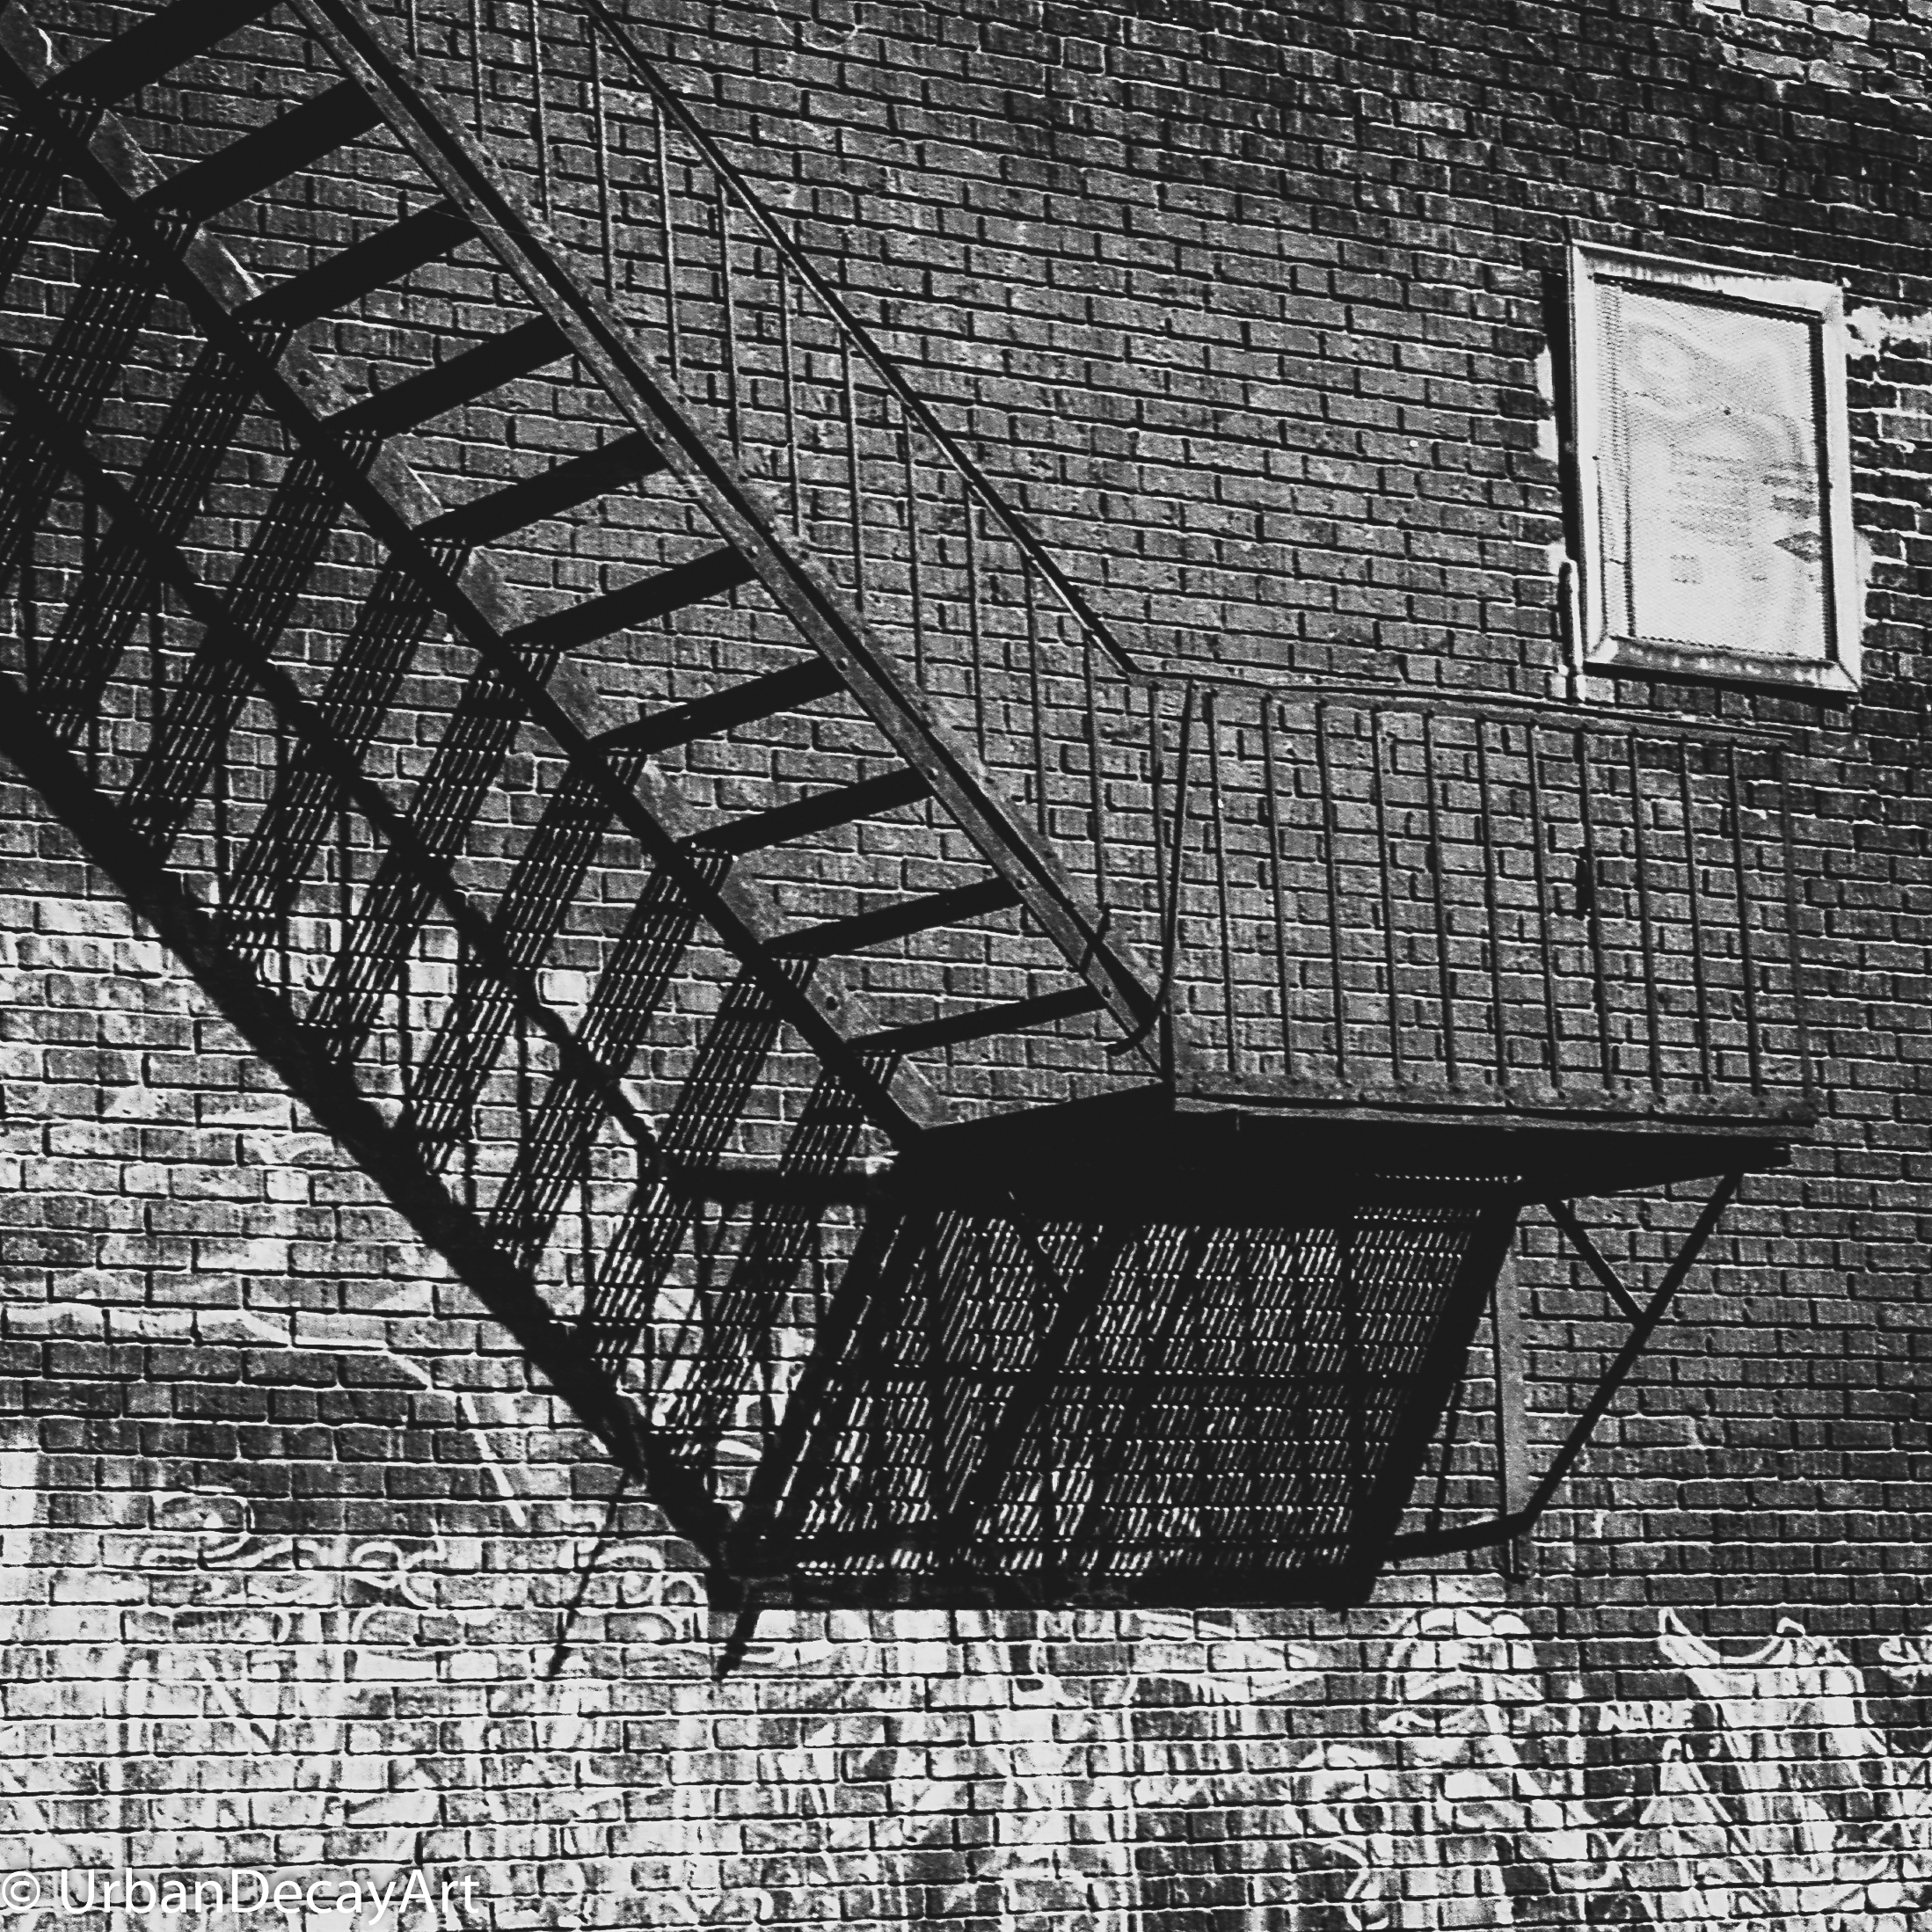 Stairs Porta 400 35 mm converted to Black and white